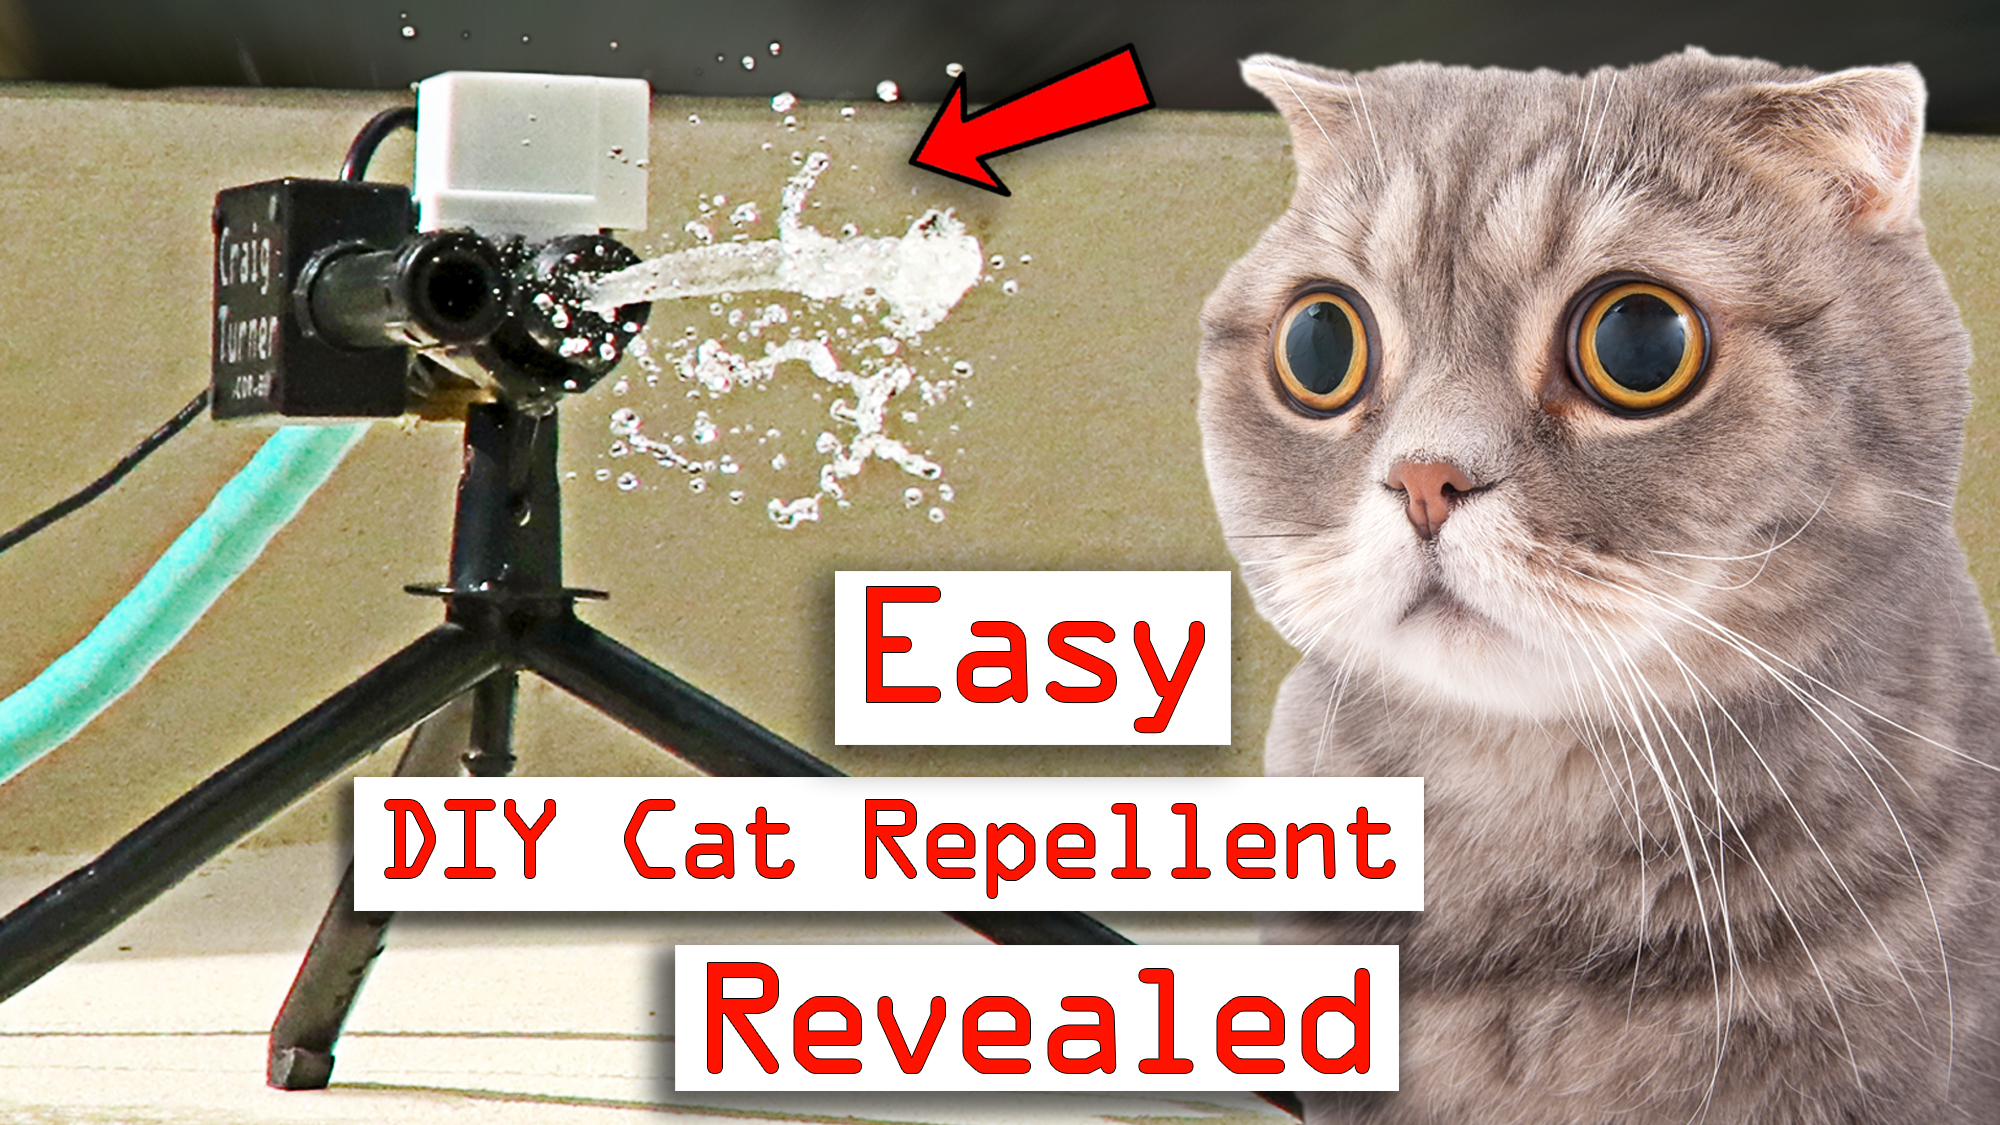 How To Make A Cat Repellent Automatic Sprinkler For